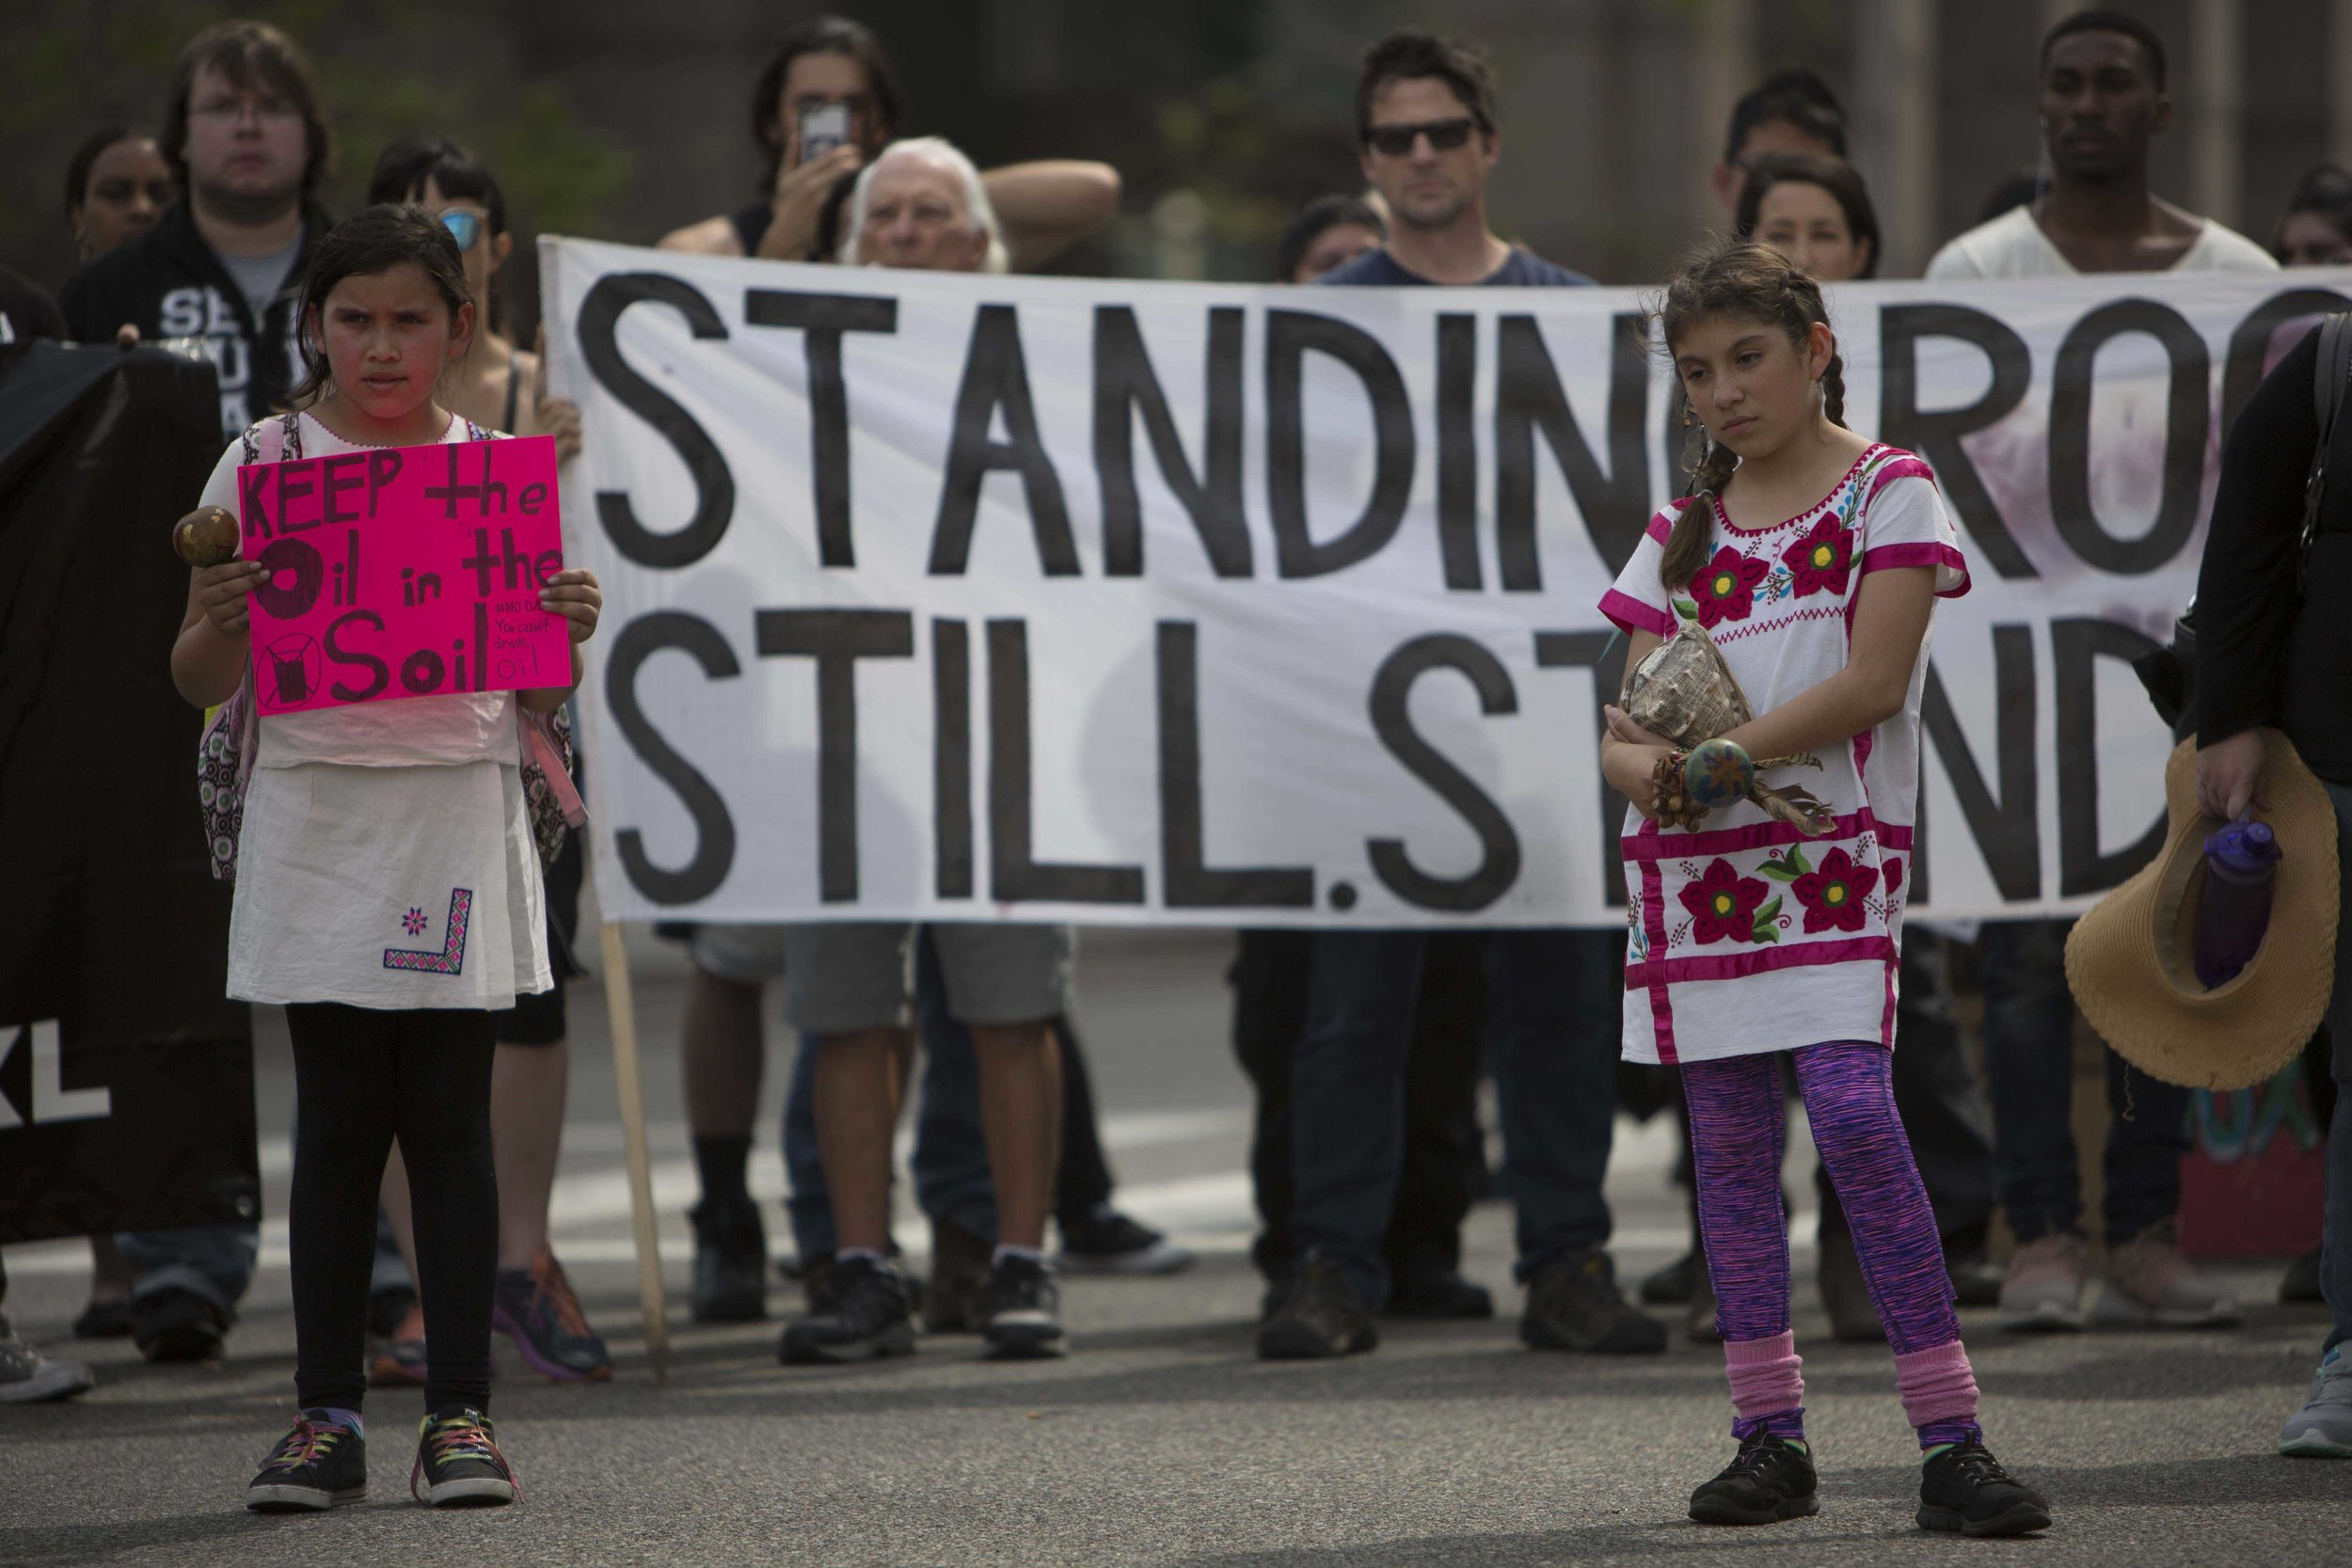 A yound child holdind a sign about wantin no oil drilling near the Dakota Access  Pipeline marching with her friends from Pershing Square to City Hall in Downtown Los Angles, Calif., on Friday March 10, 2017.  Photo by: Daniel/Corsair Staff